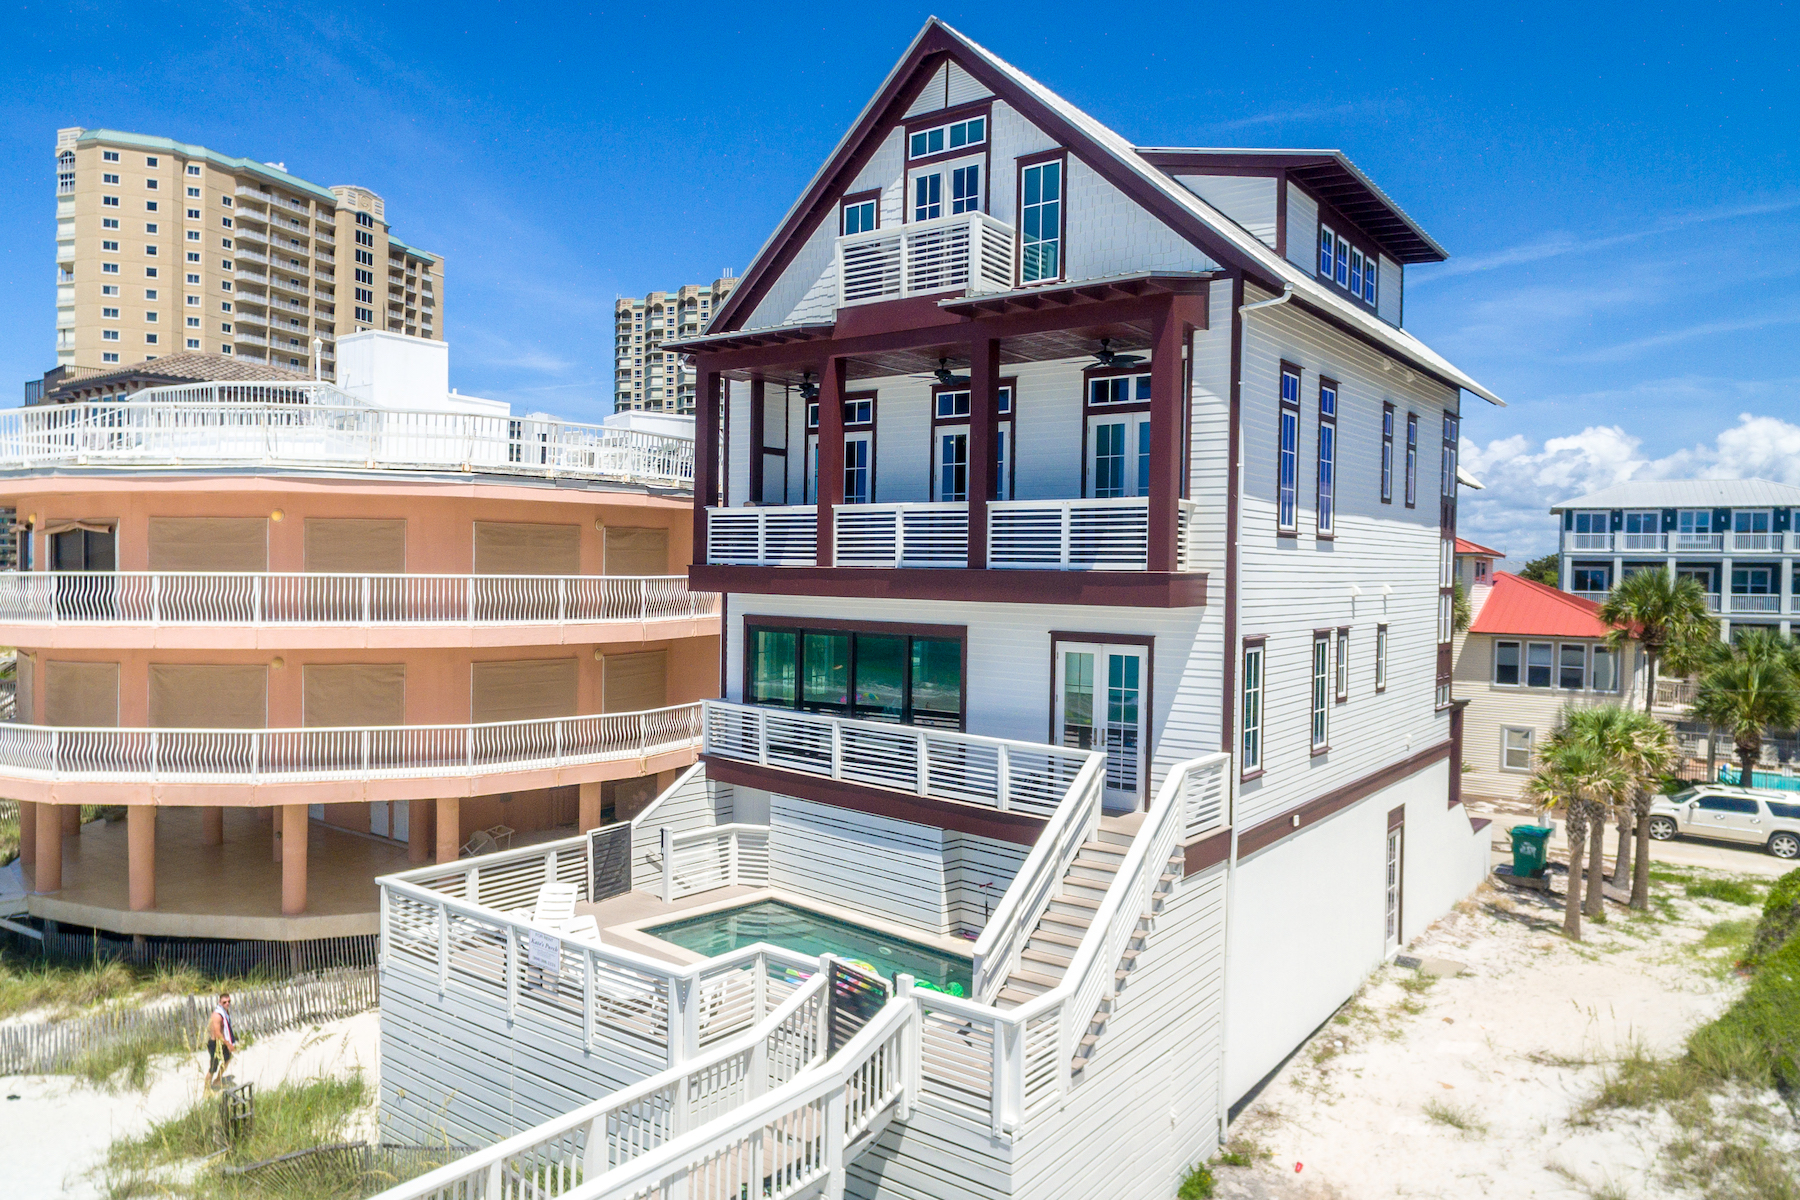 Perched high above sugary white sands, 259 Open Gulf Street captures  breathtaking views of emerald waters from its 4 stories of Gulf-front  balconies.